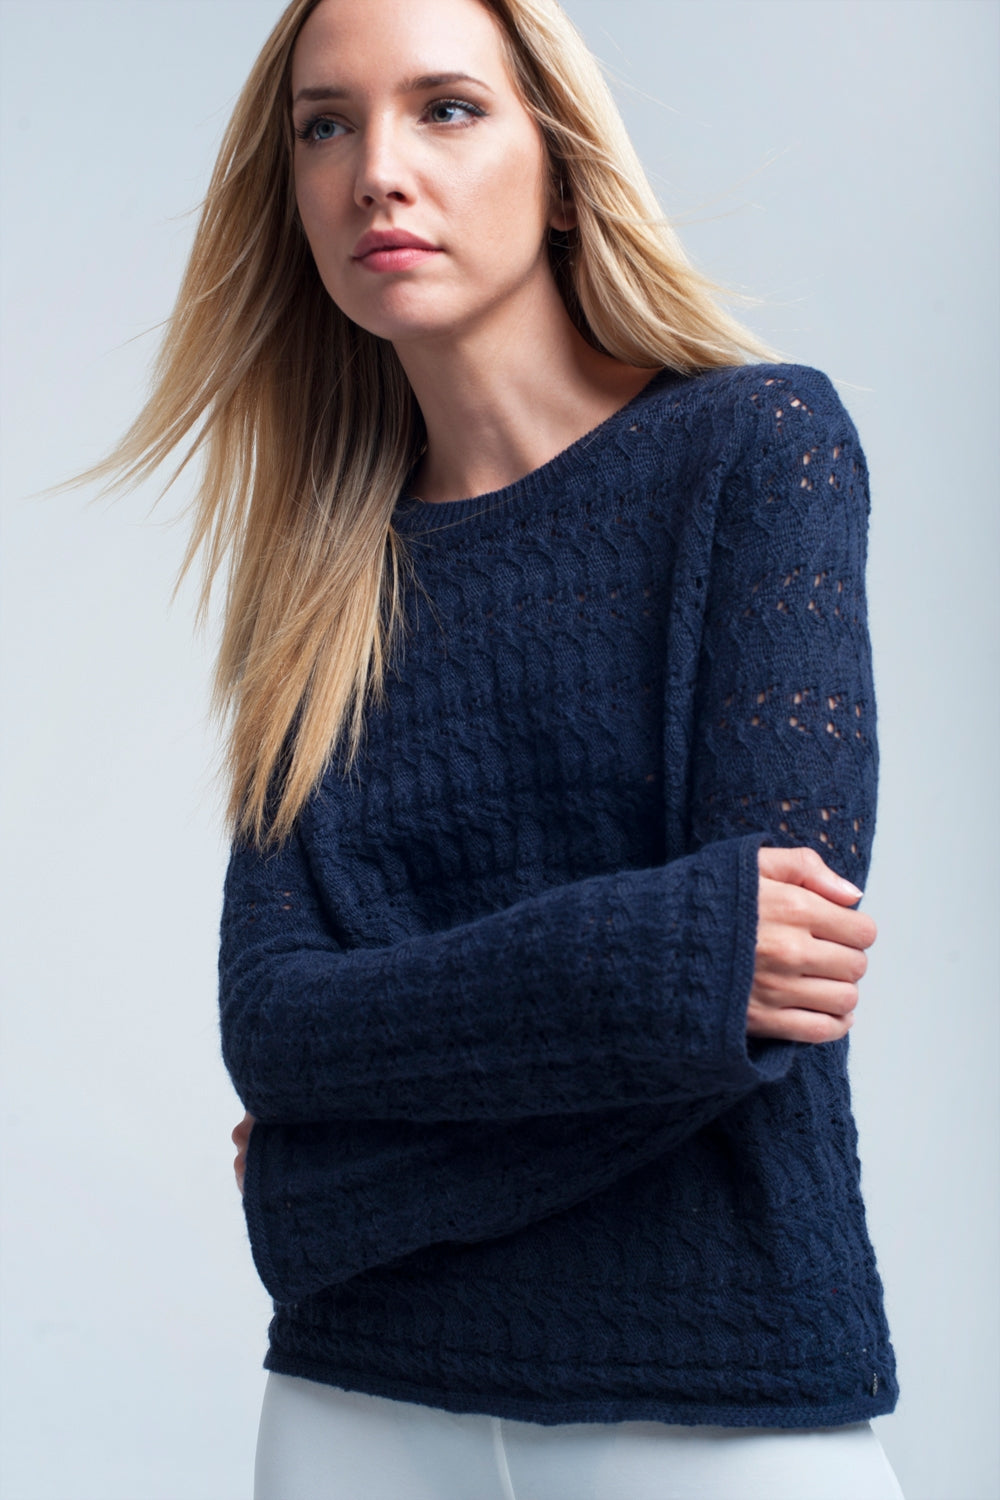 Knitted navy sweater